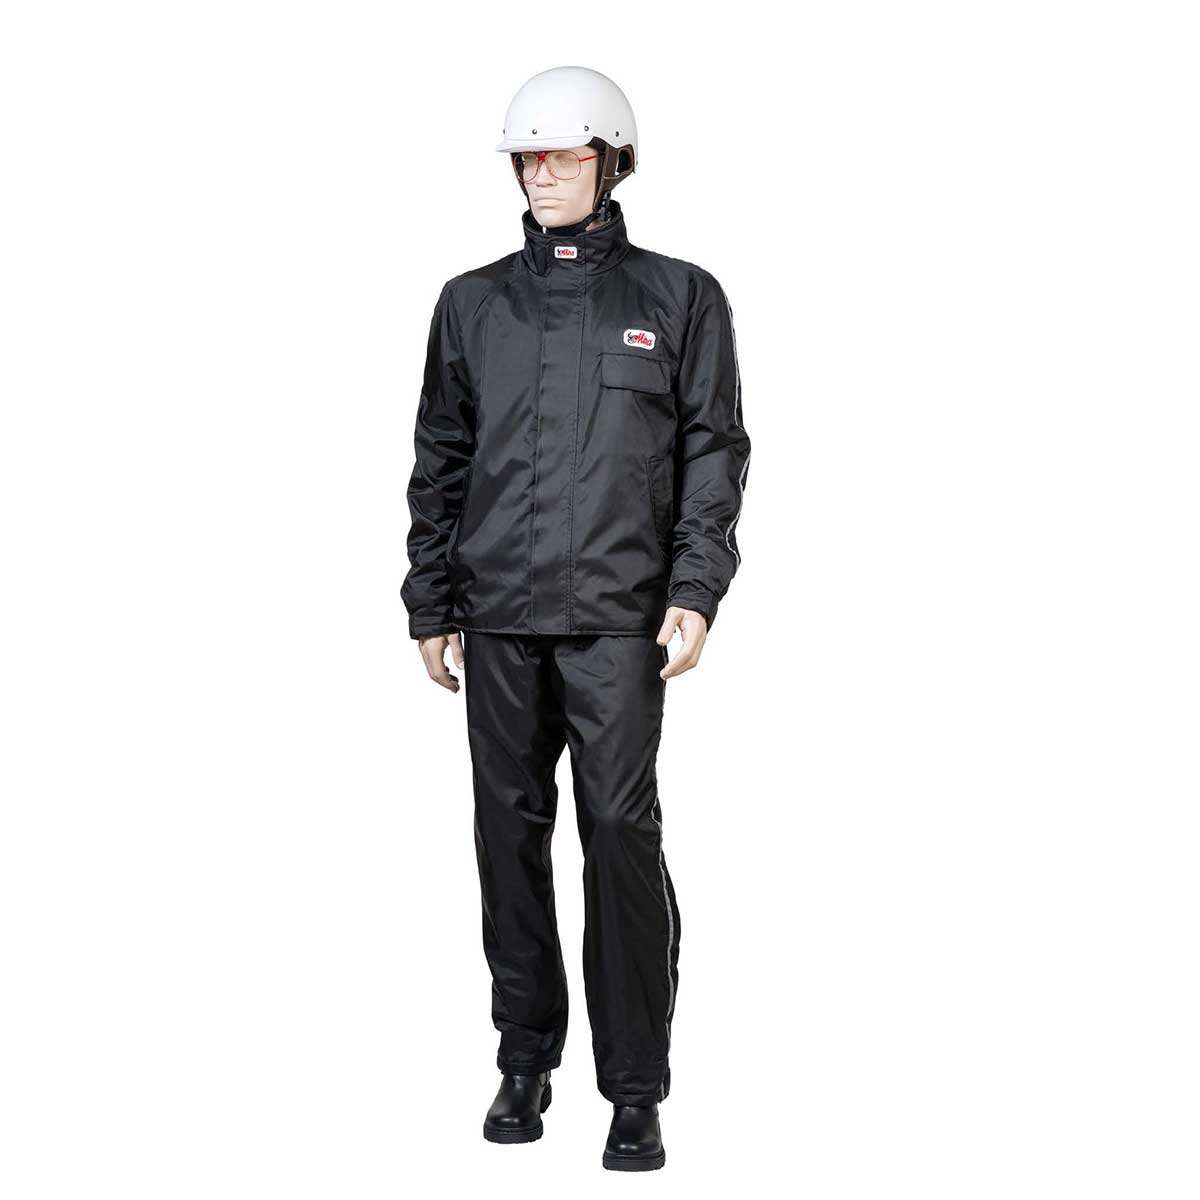 Mira Winter Working Wear